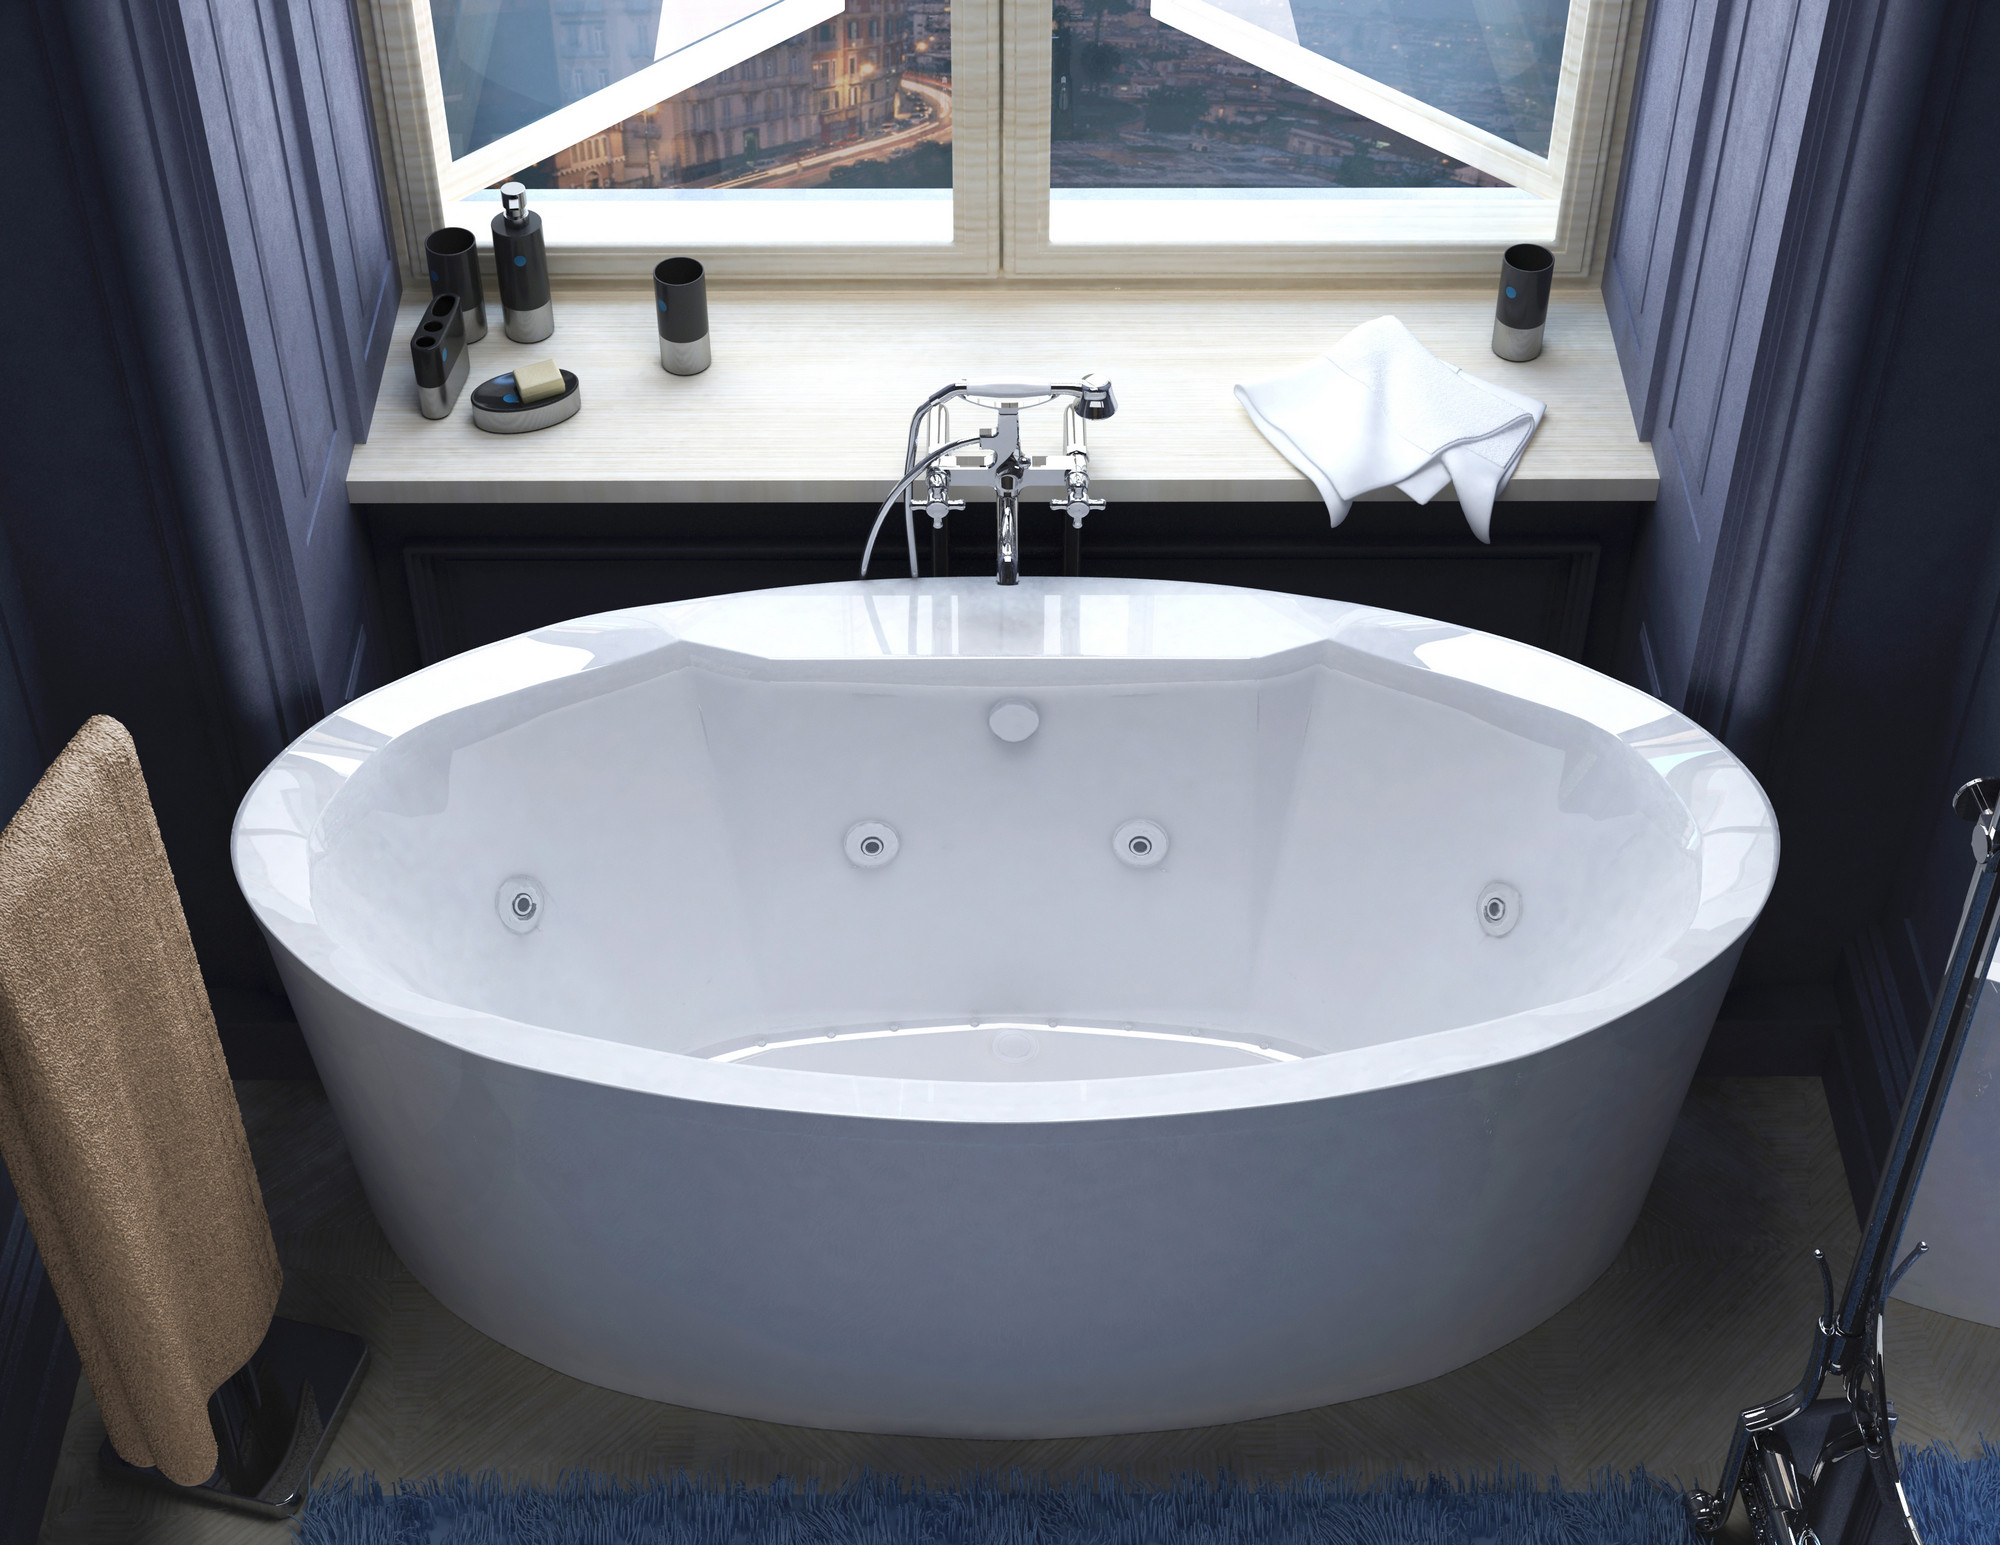 MediTub 3468SD Suisse Oval Air & Whirlpool Water Jet Tub With Left Pump